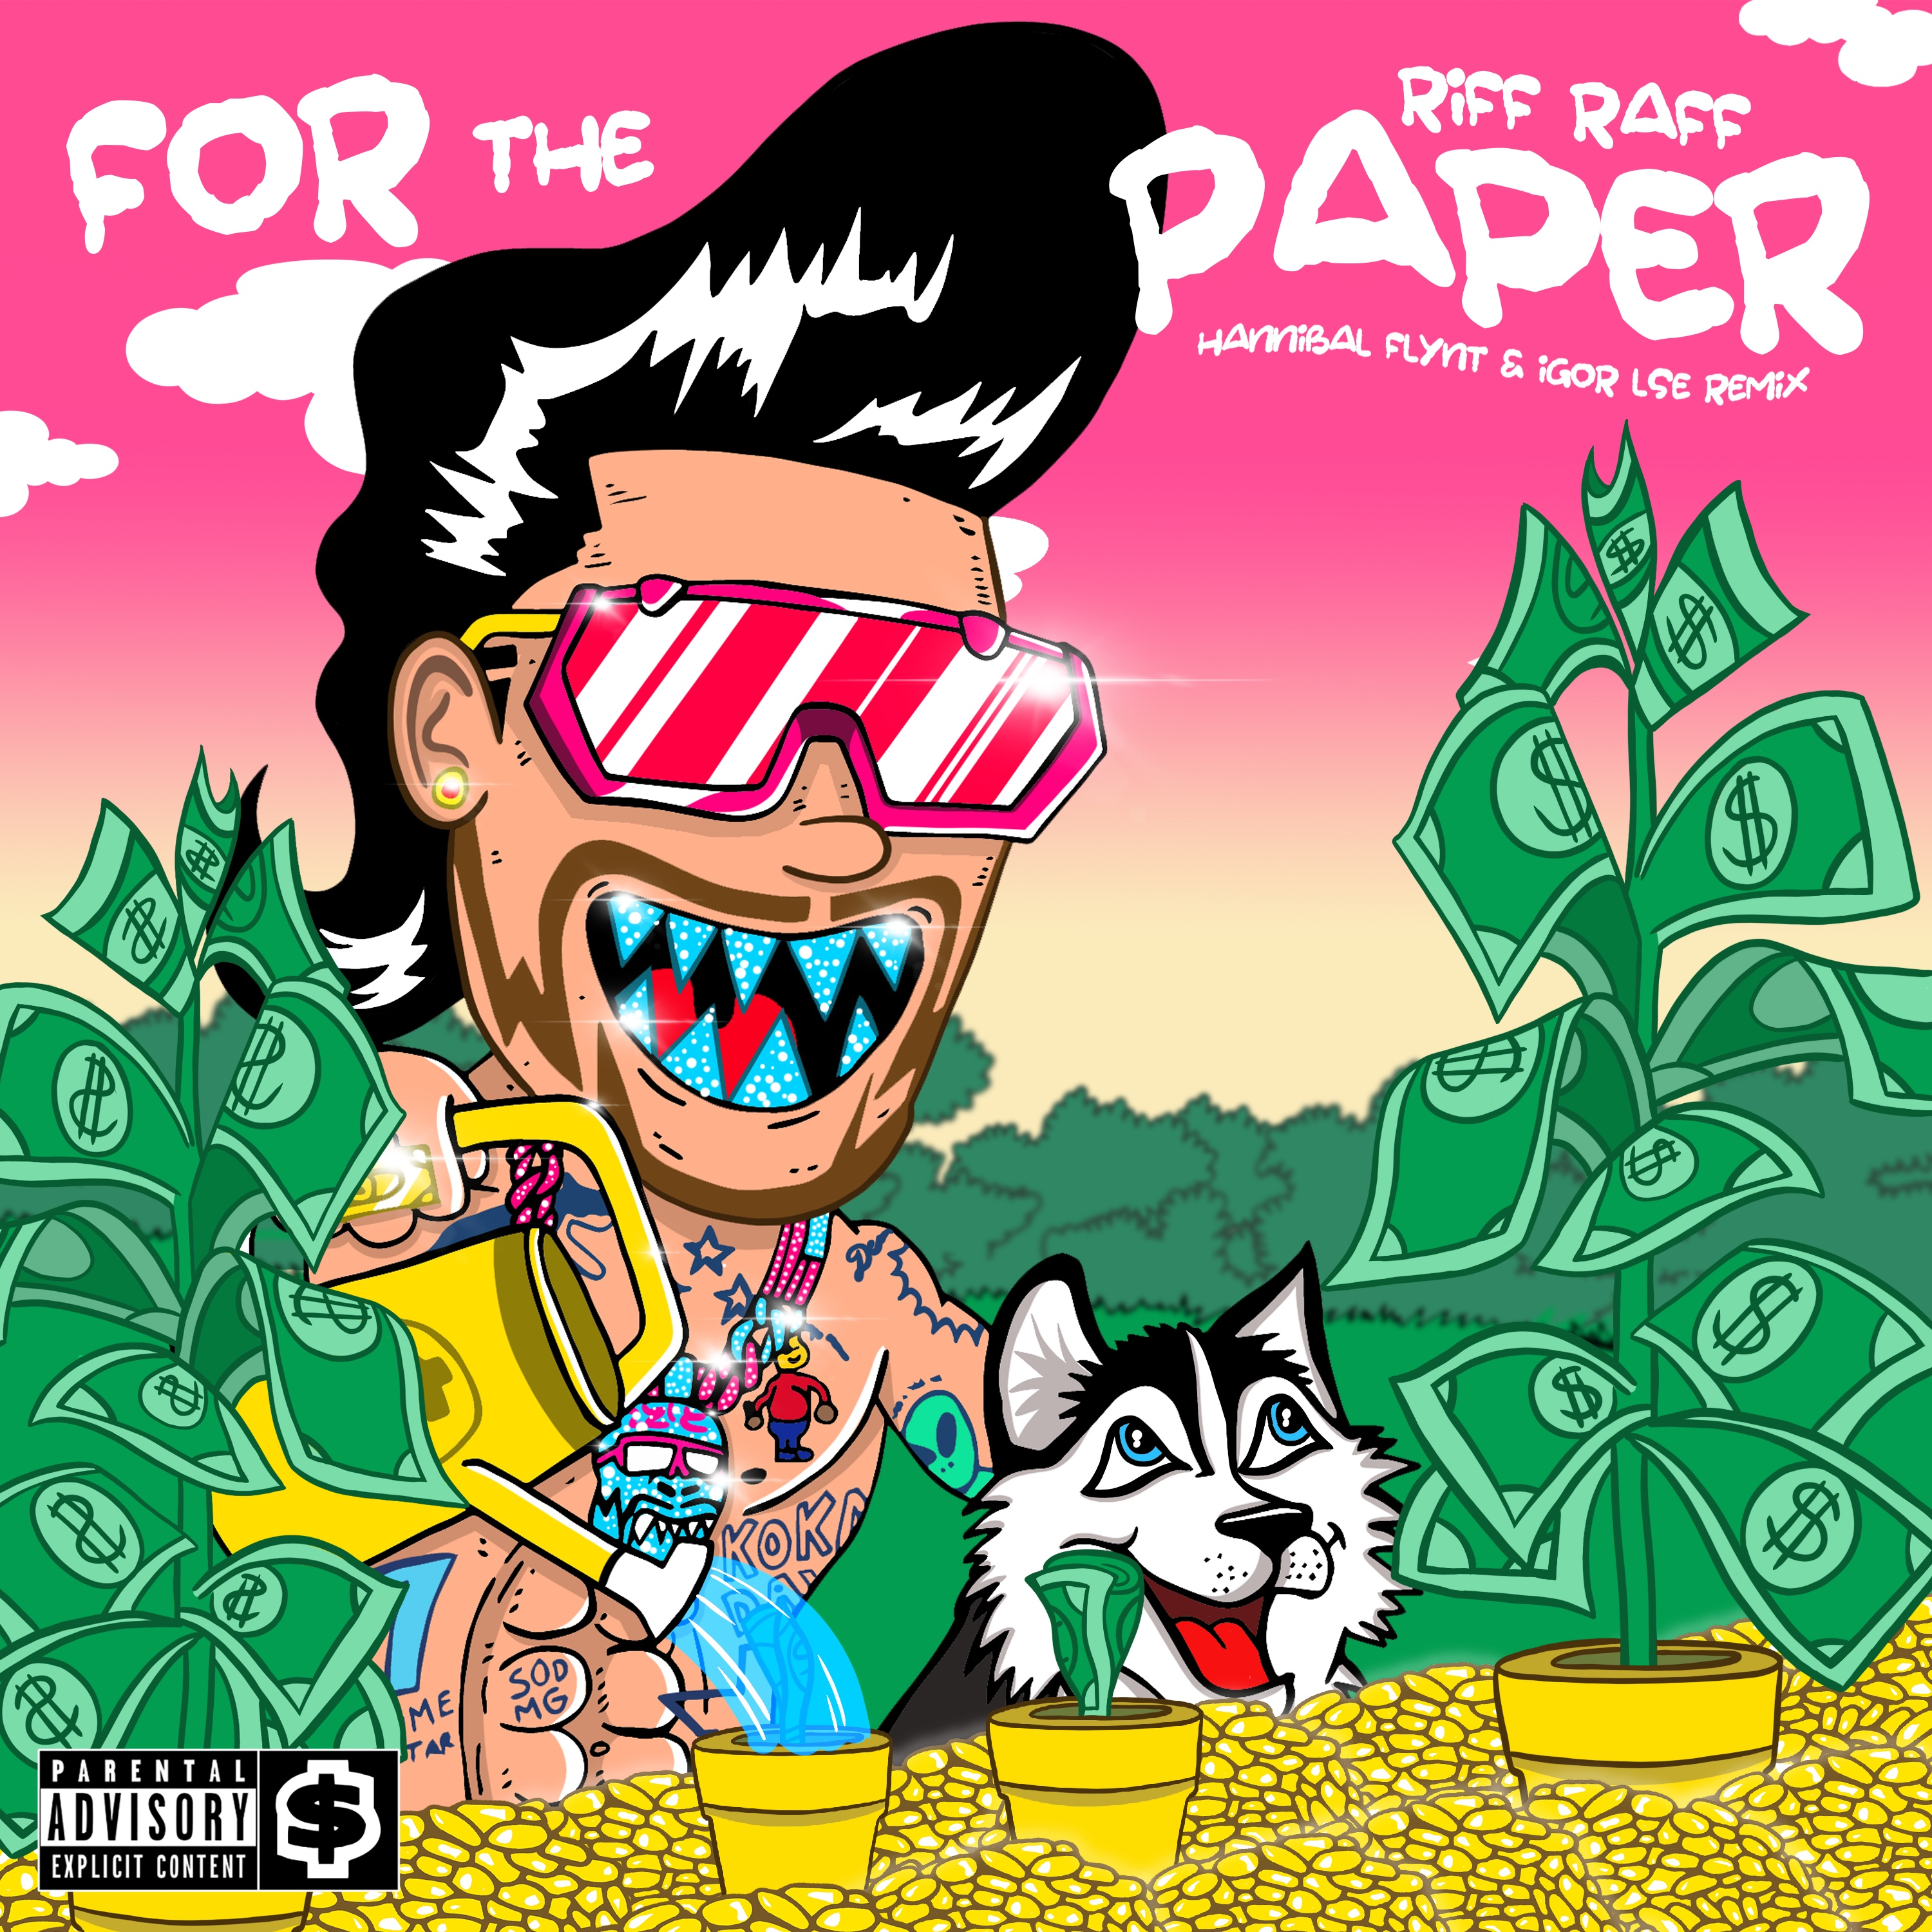 Riff_Raff-_For_the_paper